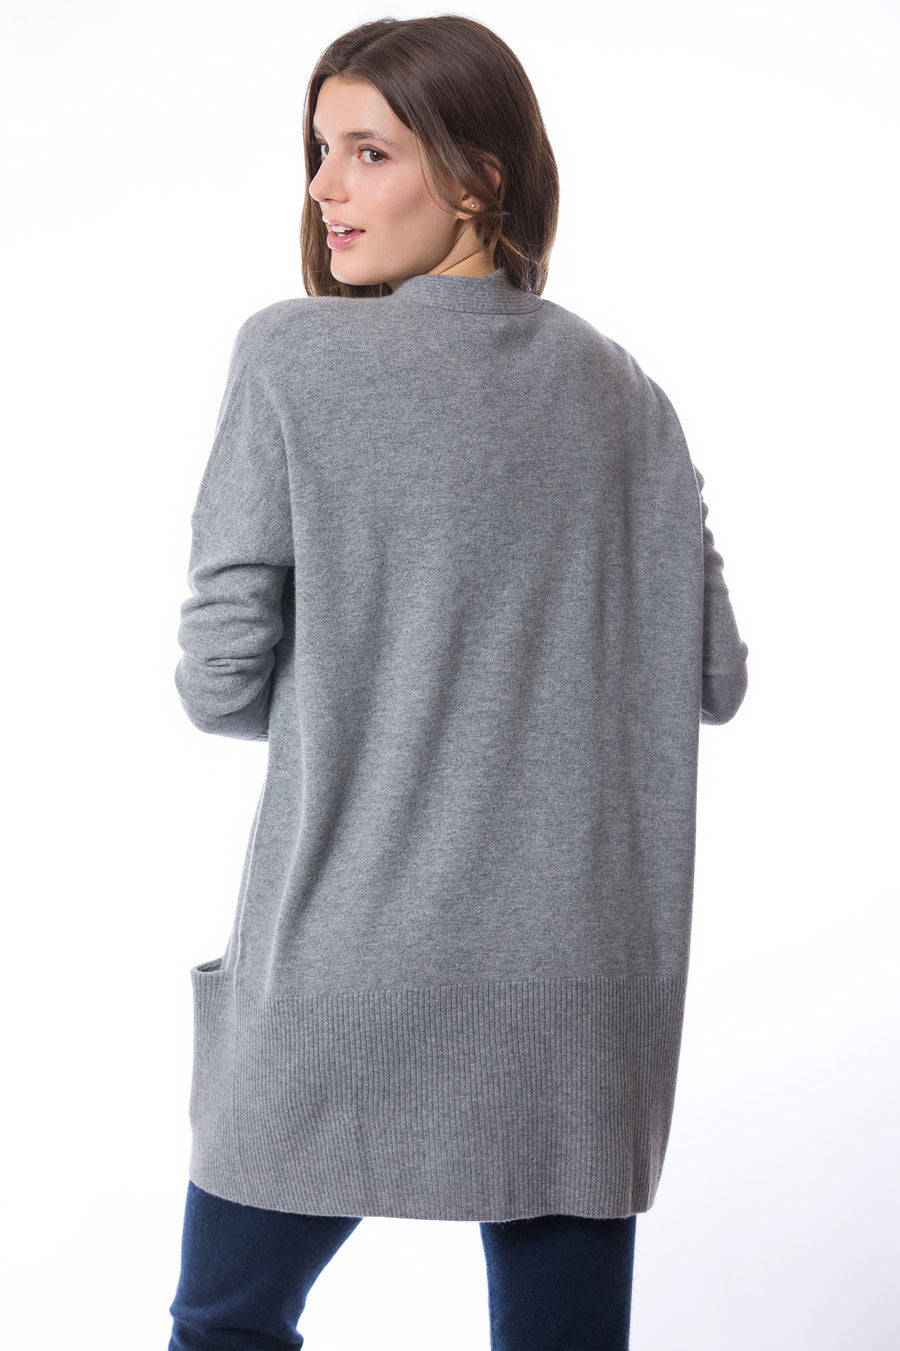 Sustainable Cashmere Edge To Edge Cardigan - Soft Grey Marl - Dongli Cashmere